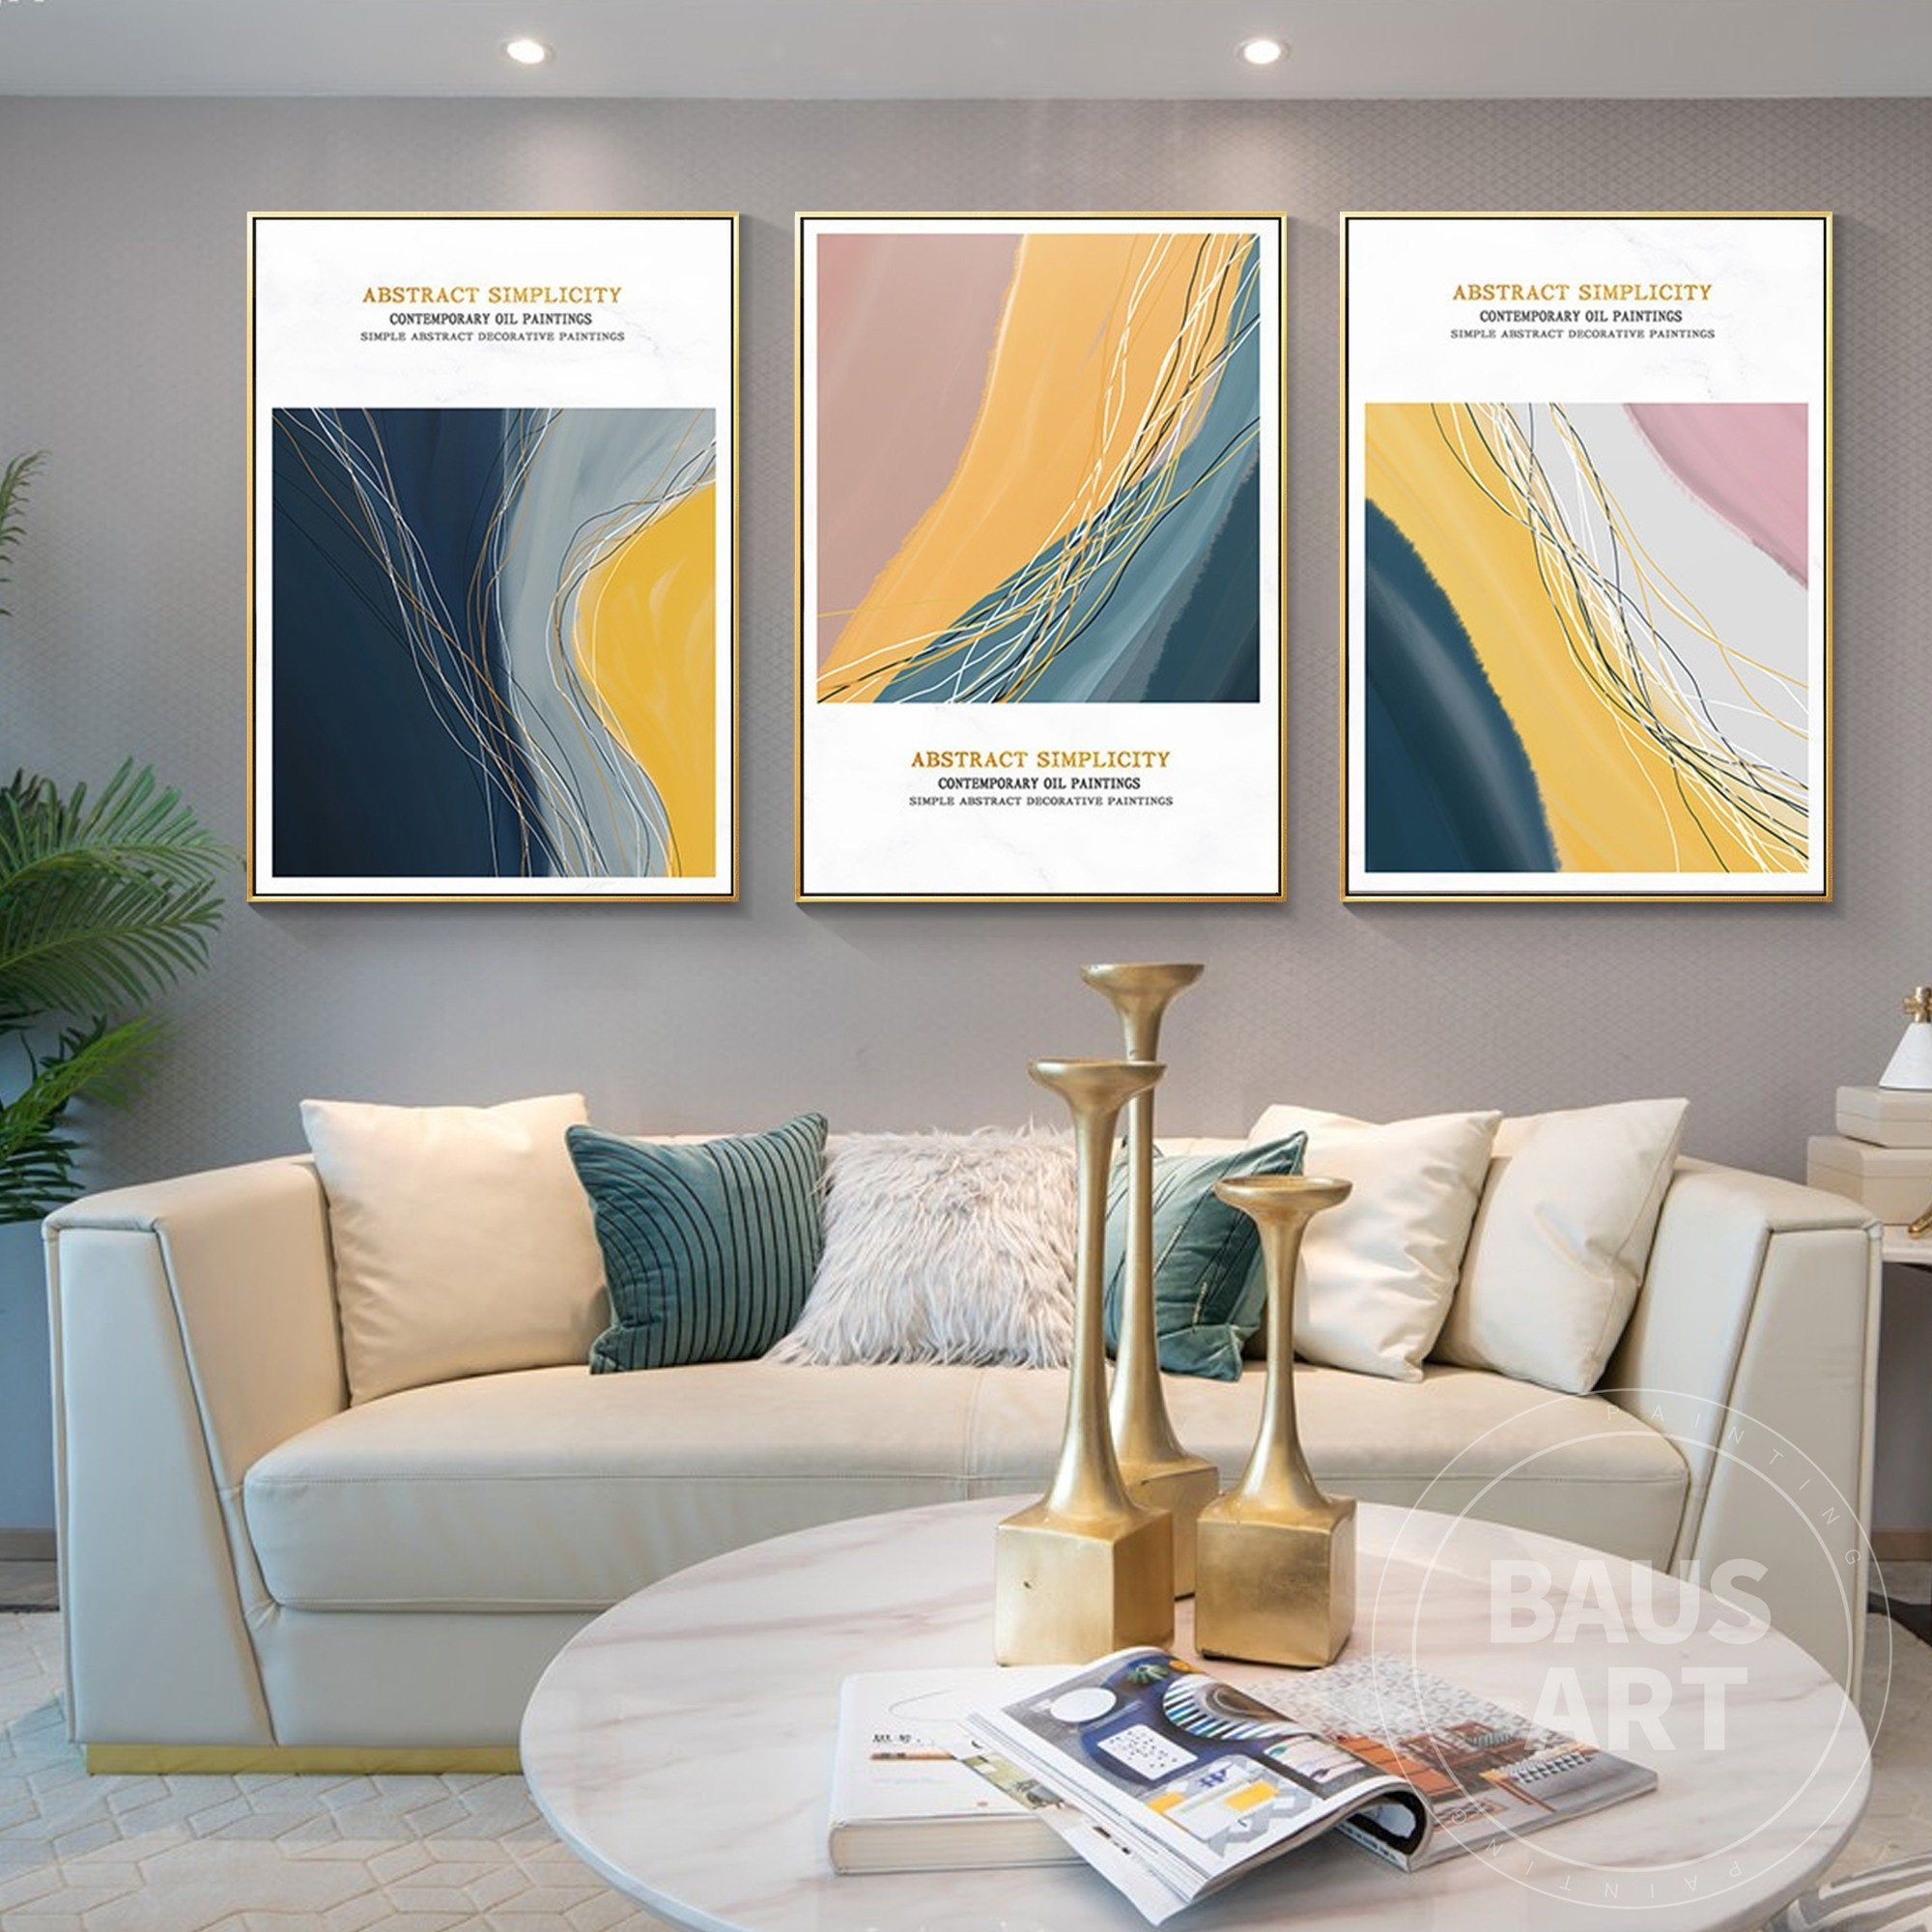 Abstract And Simplicity Group B Print On Canvas Large 3 Piece Etsy Framed Wall Art Sets Framed Prints Frames On Wall